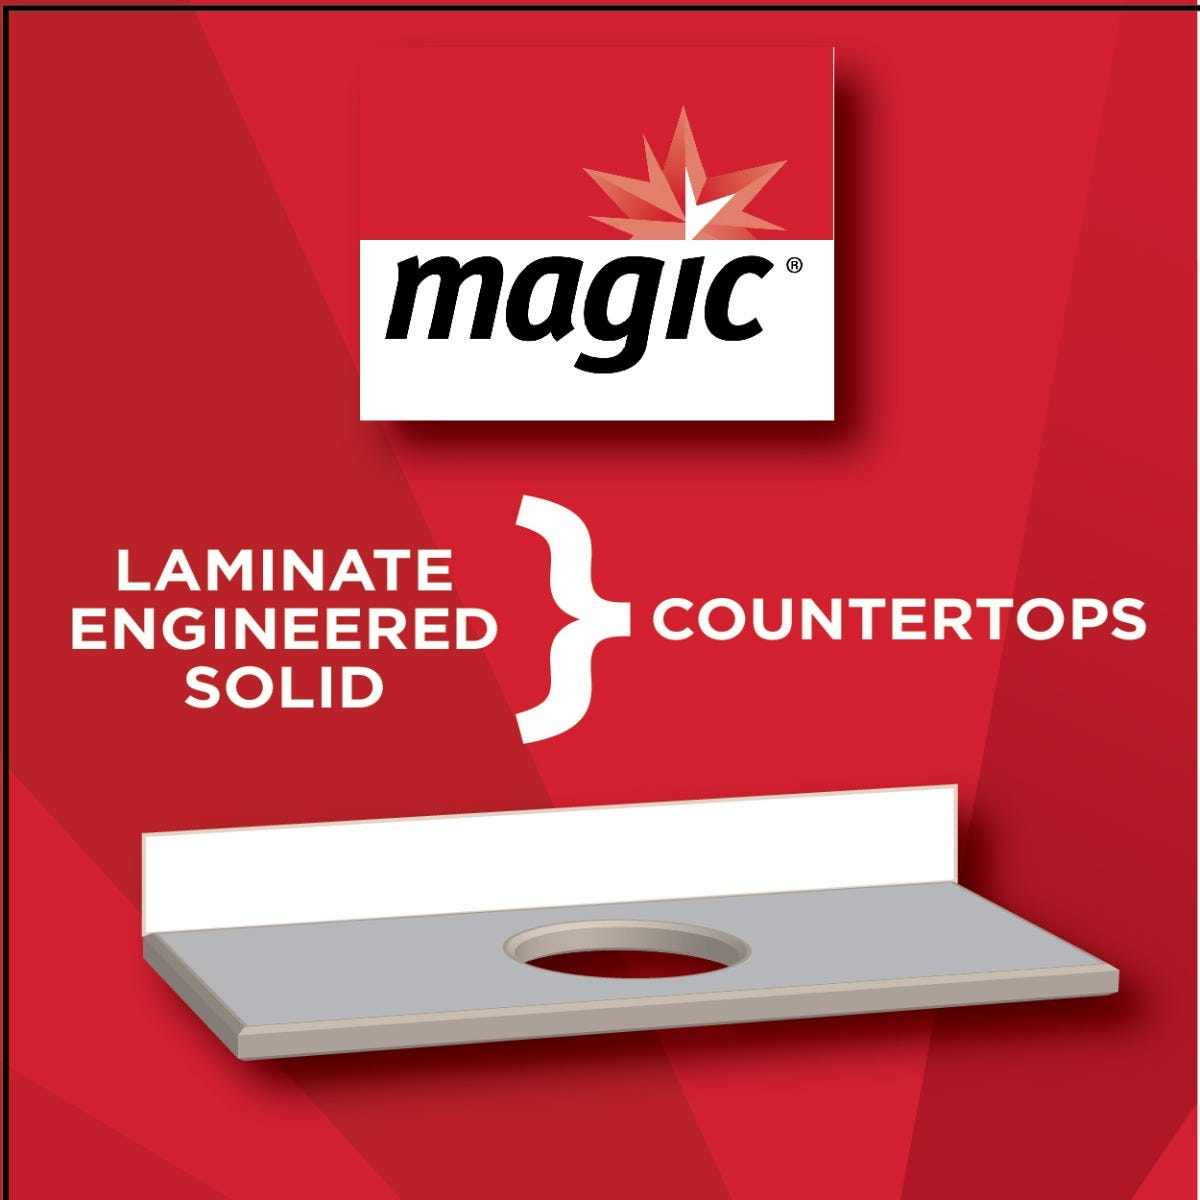 Magic Counter Cleaner Aerosol surfaces